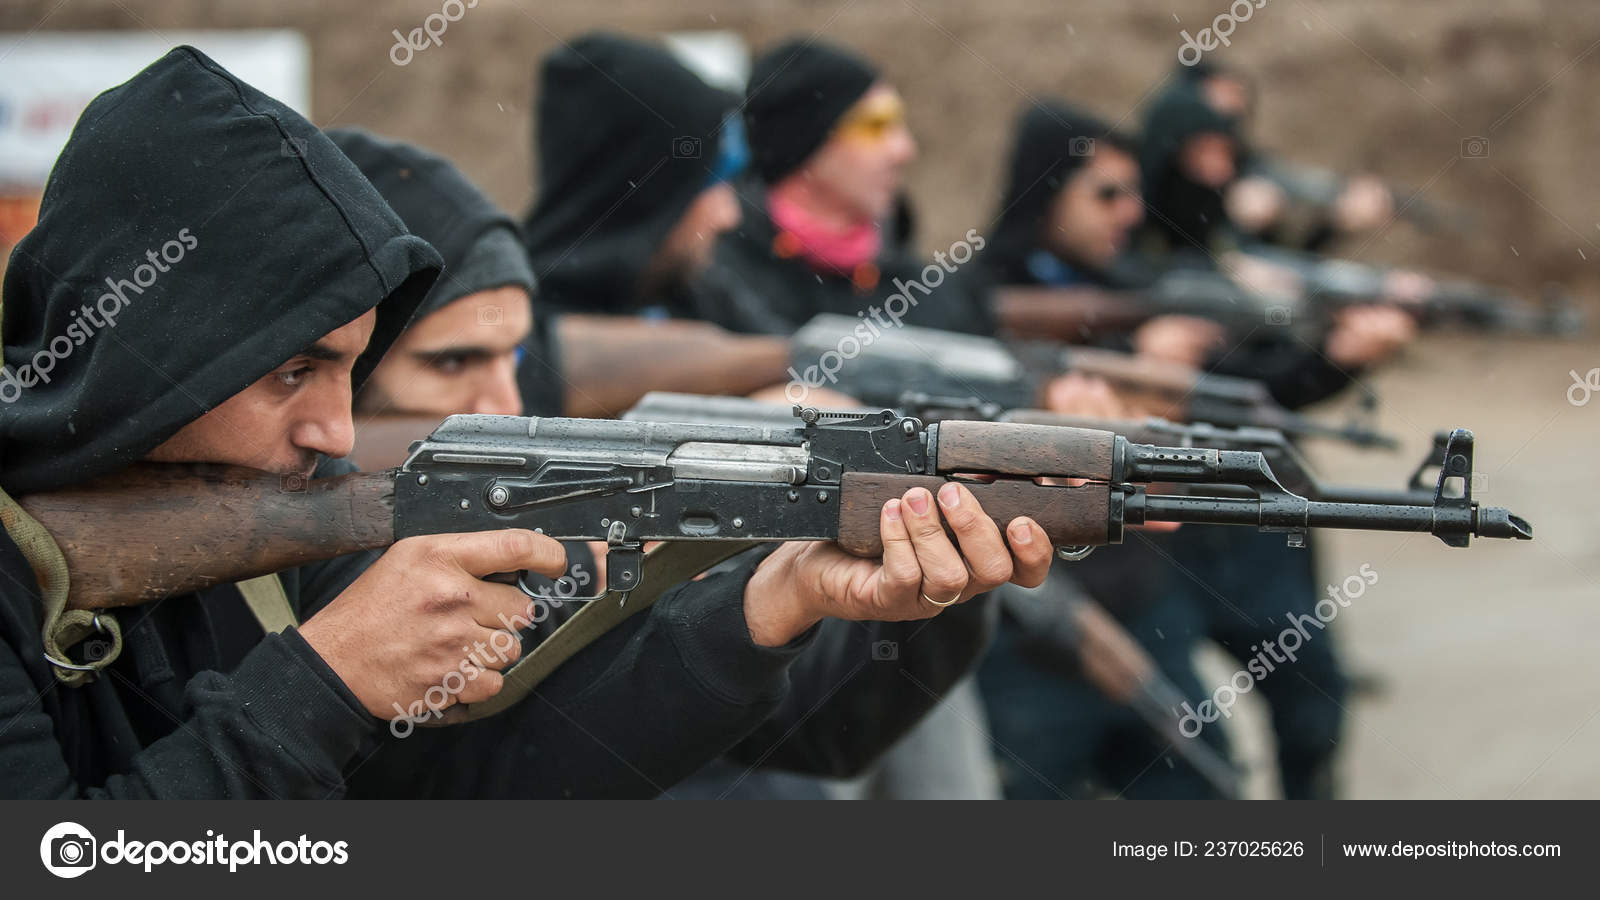 Large Team Group Civilian People Have Action Training Rifle Machine